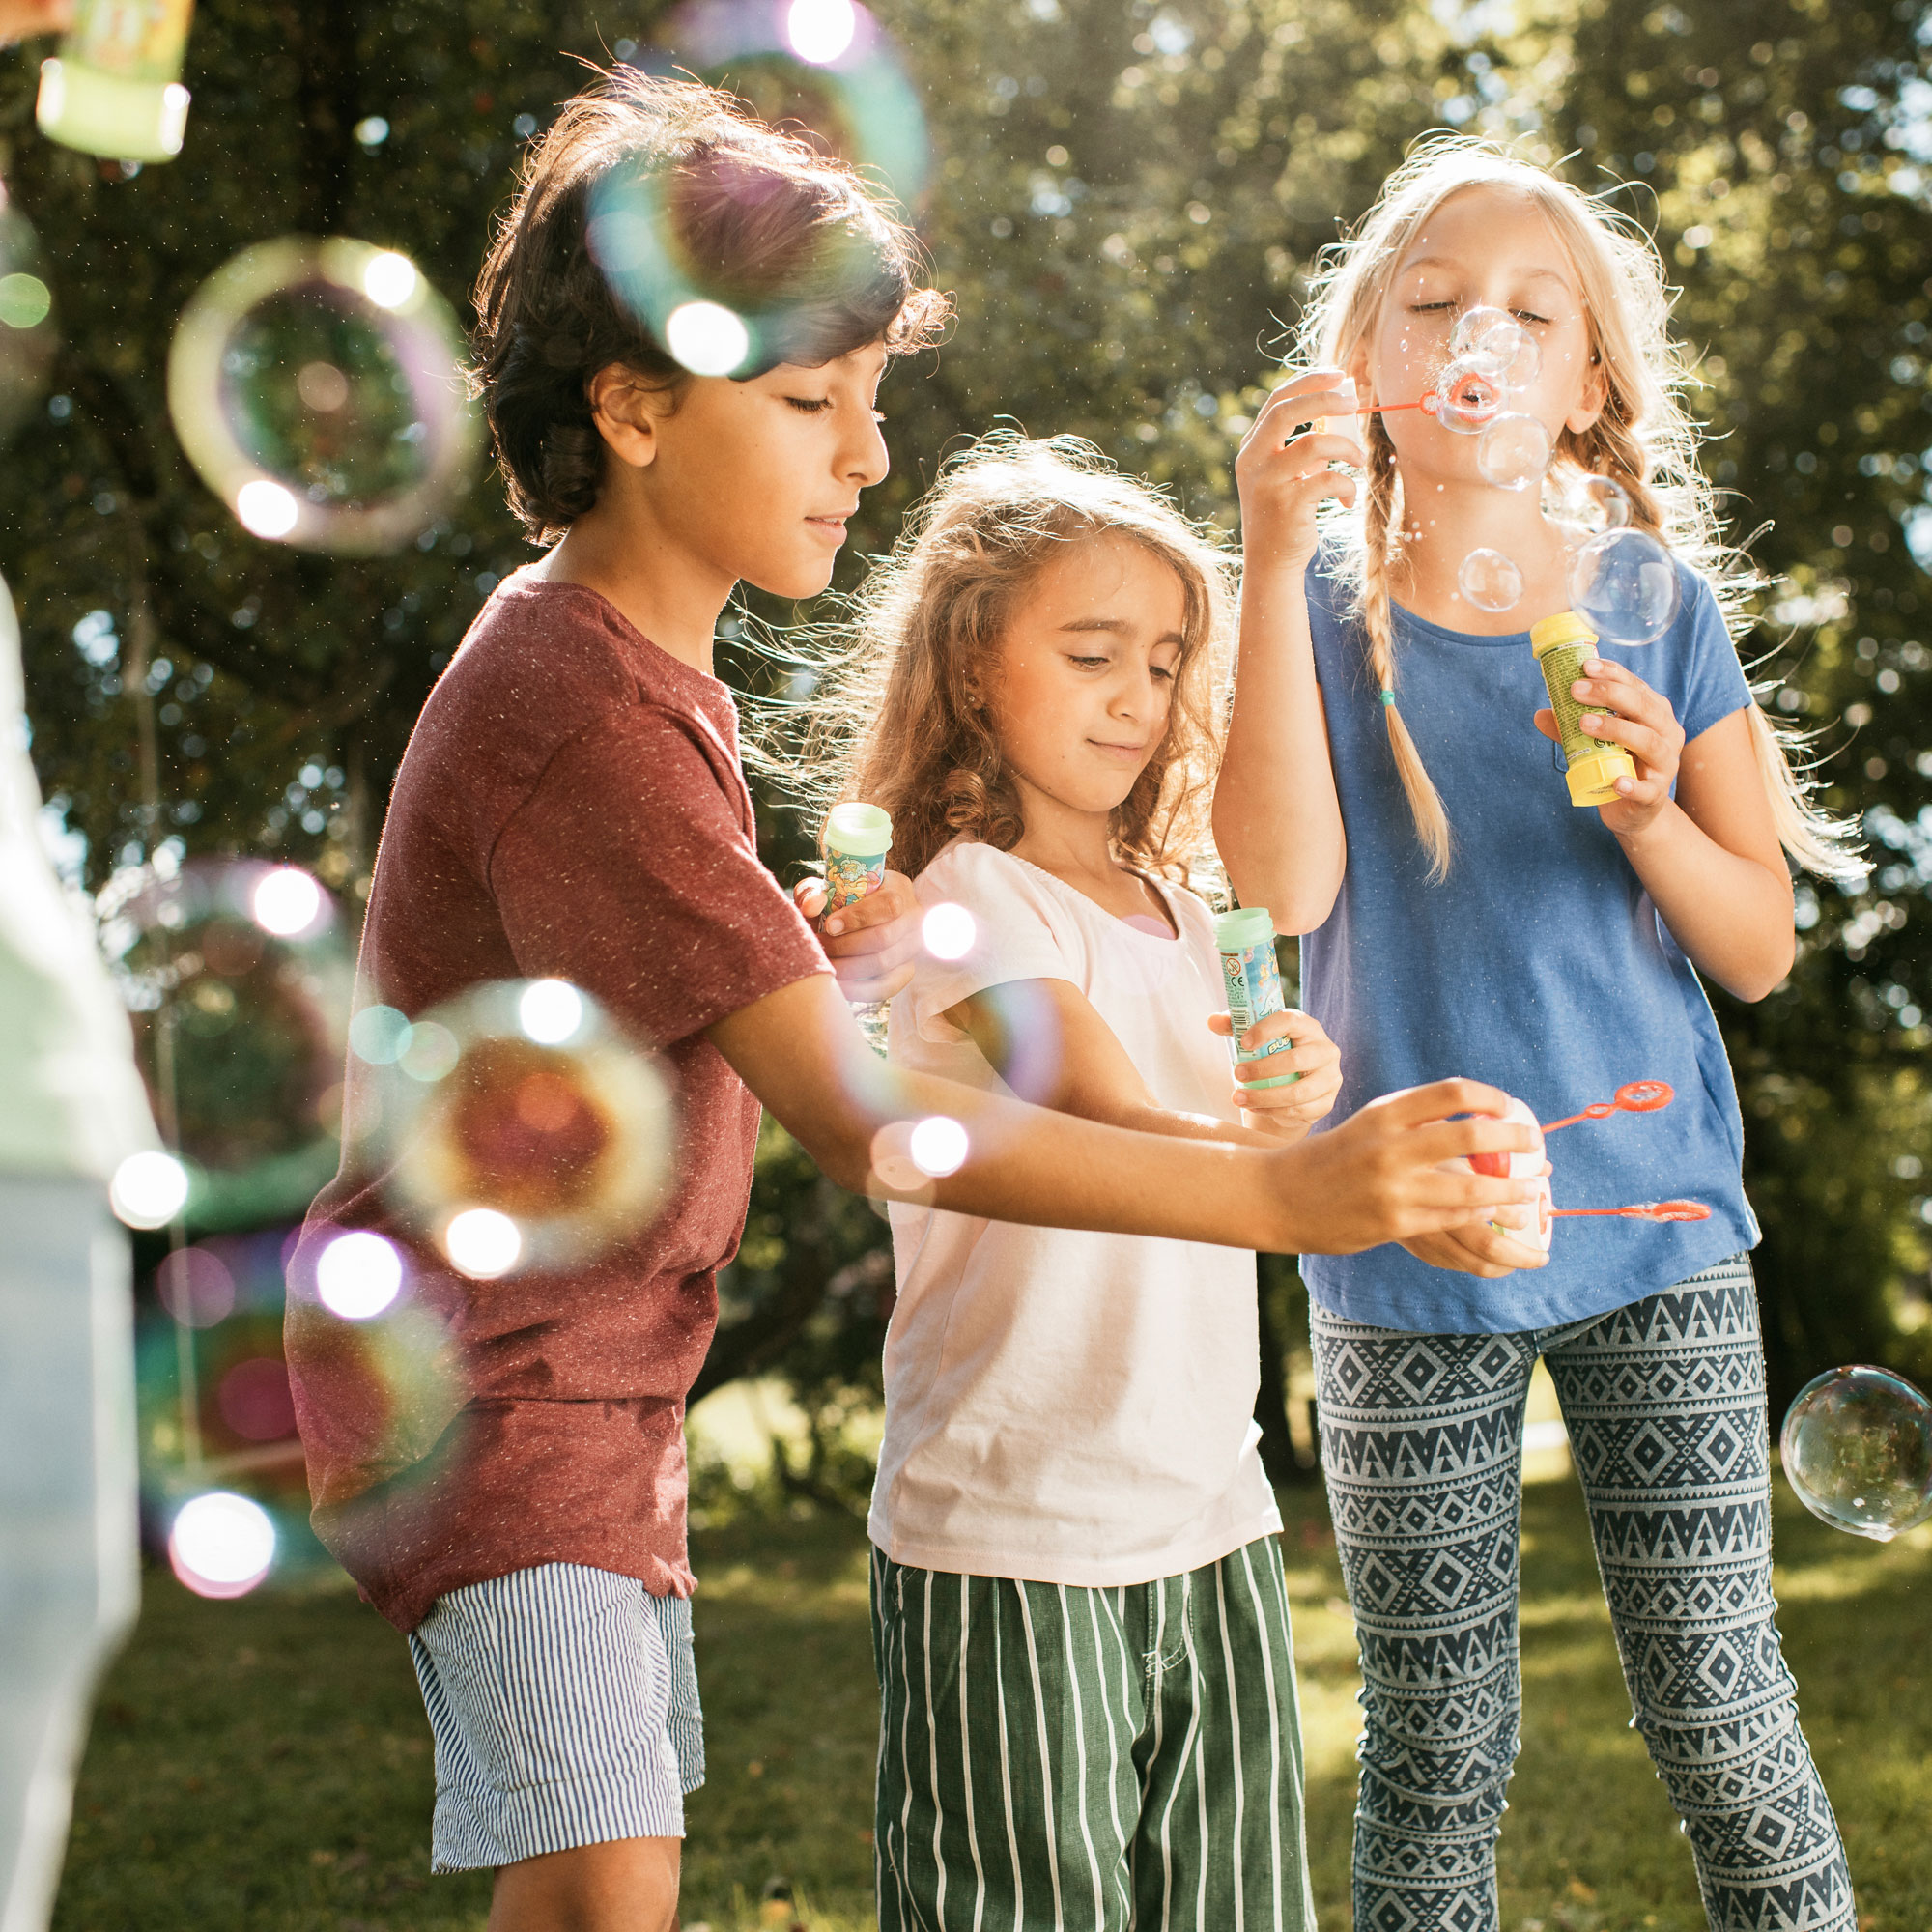 Children blowing soap bubbles.